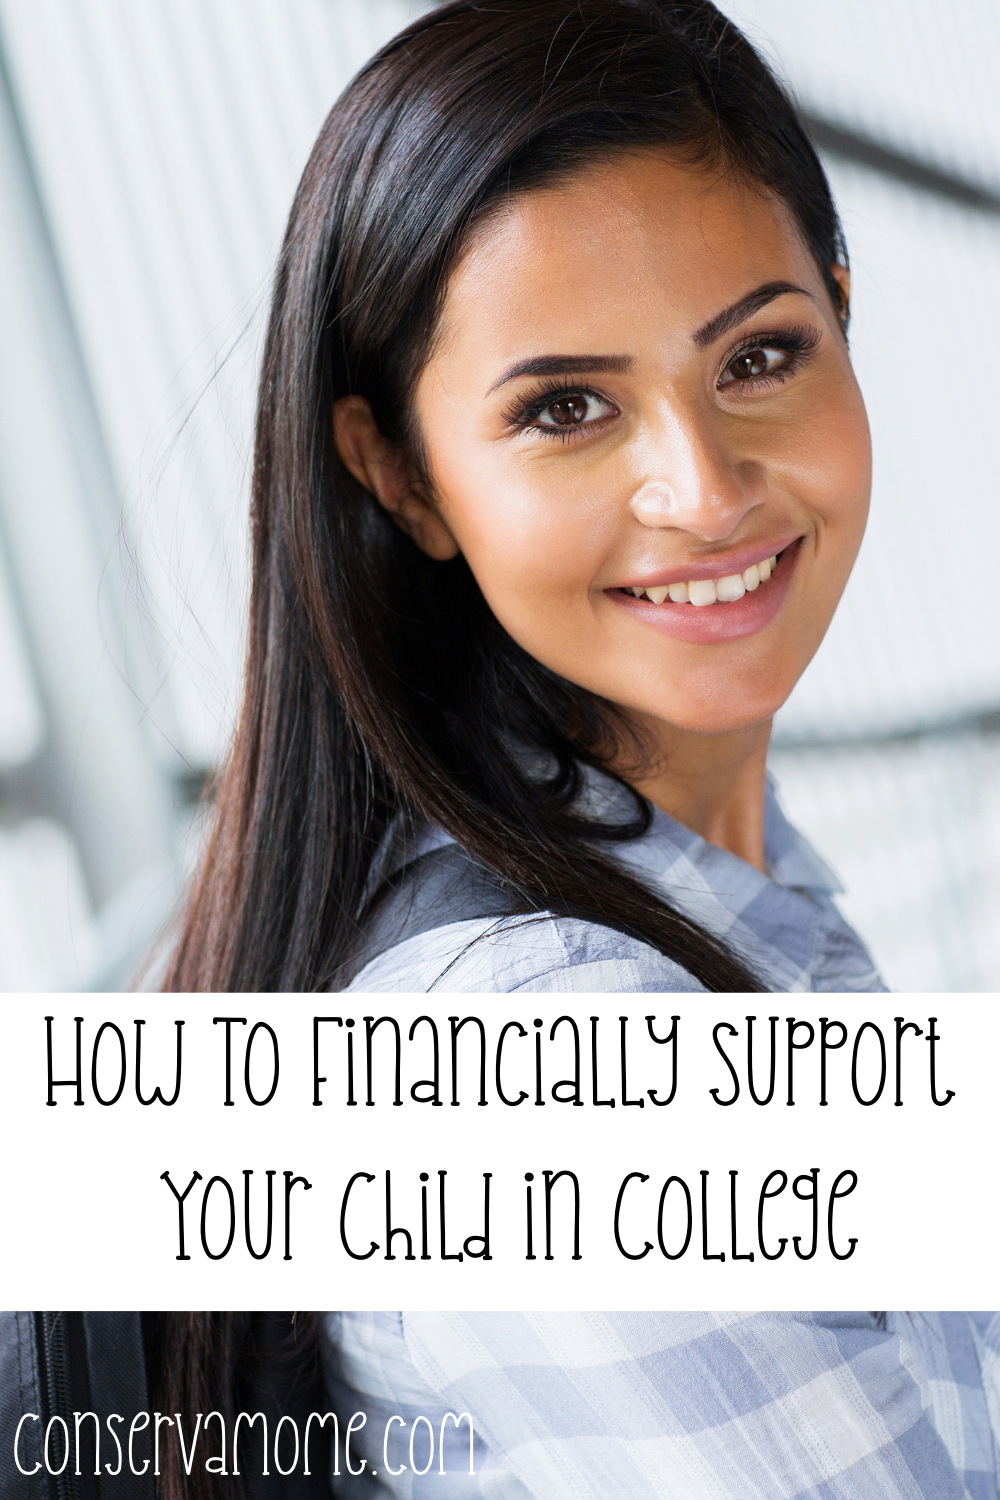 How to financially support your child in college